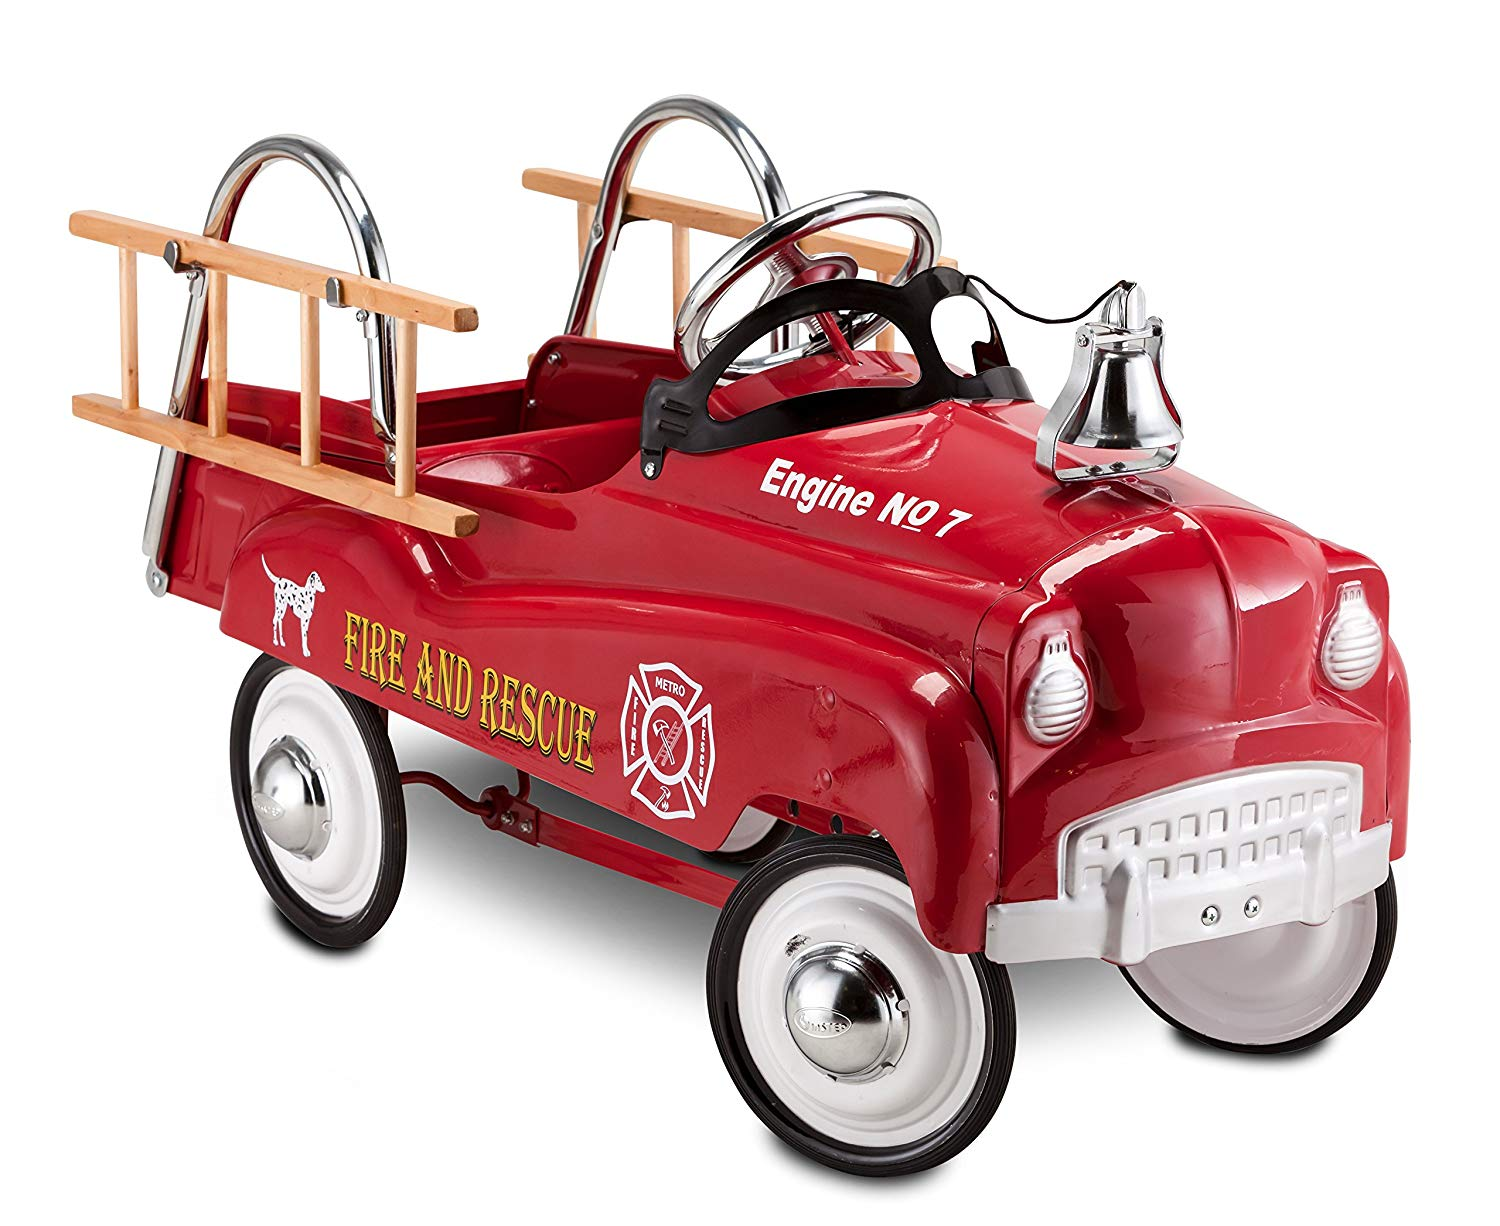 Fire Truck Pedal Car For Kids - Cool Pedal Cars-3791